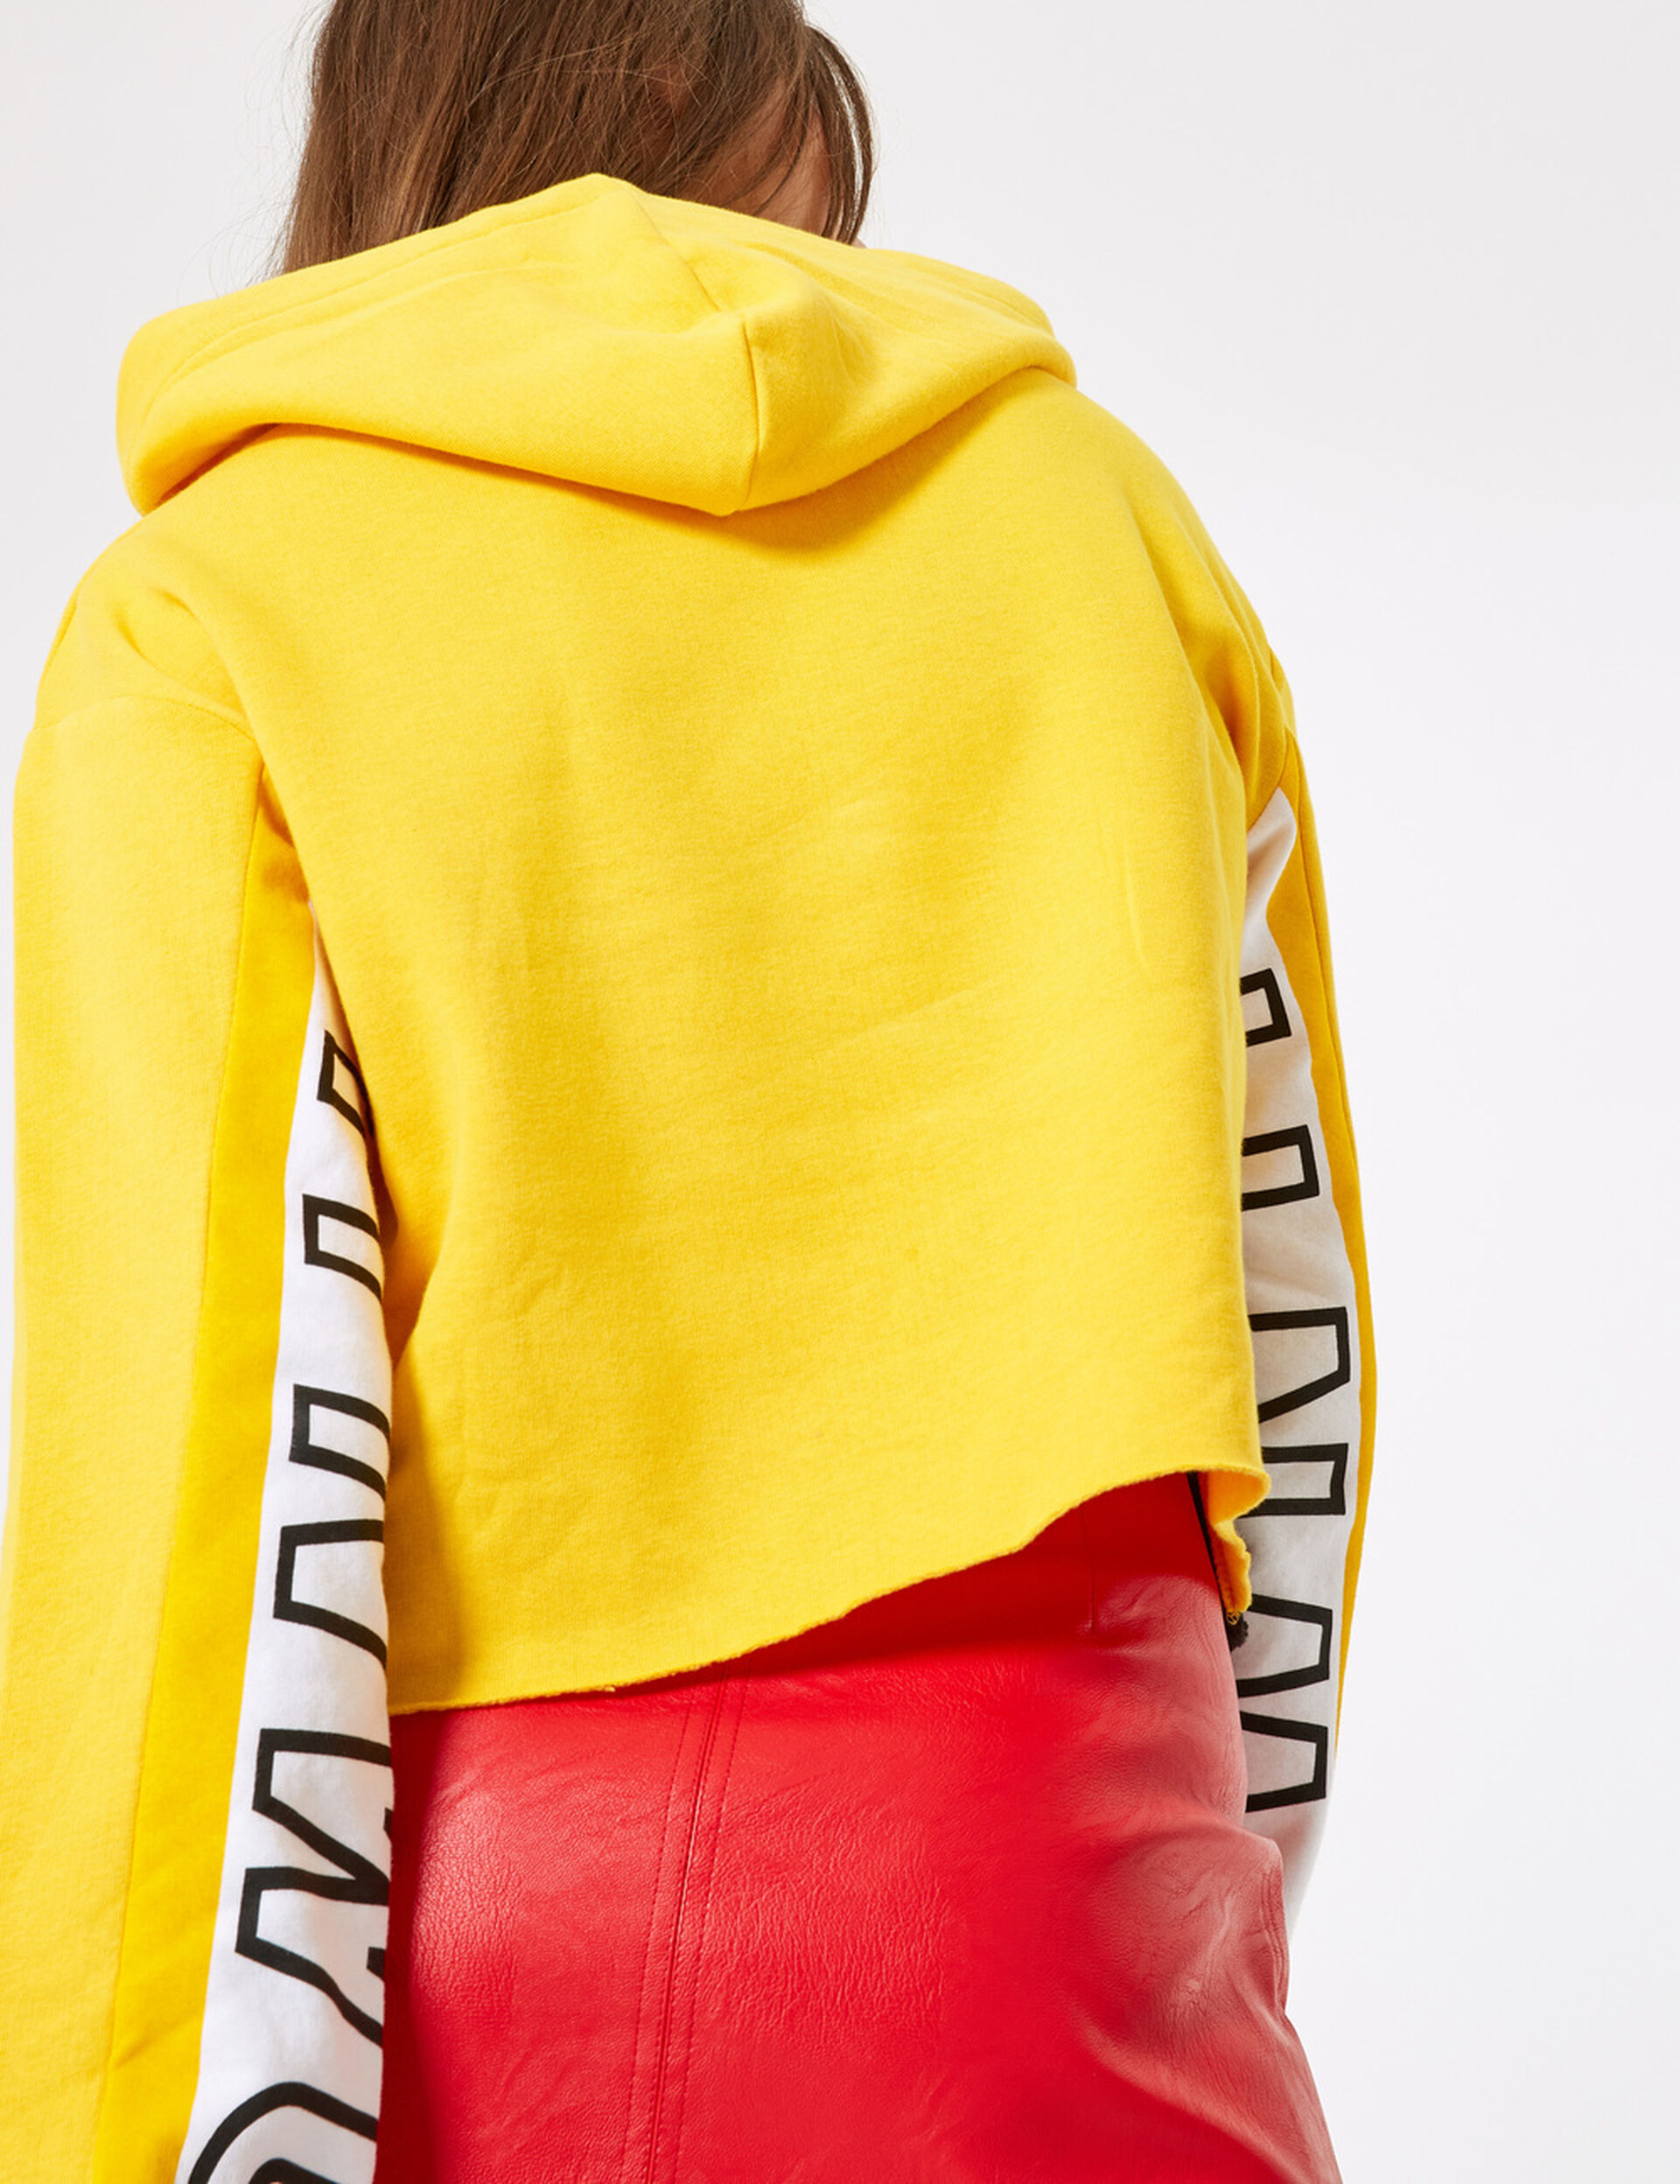 Tricolour hoodie with text design detail